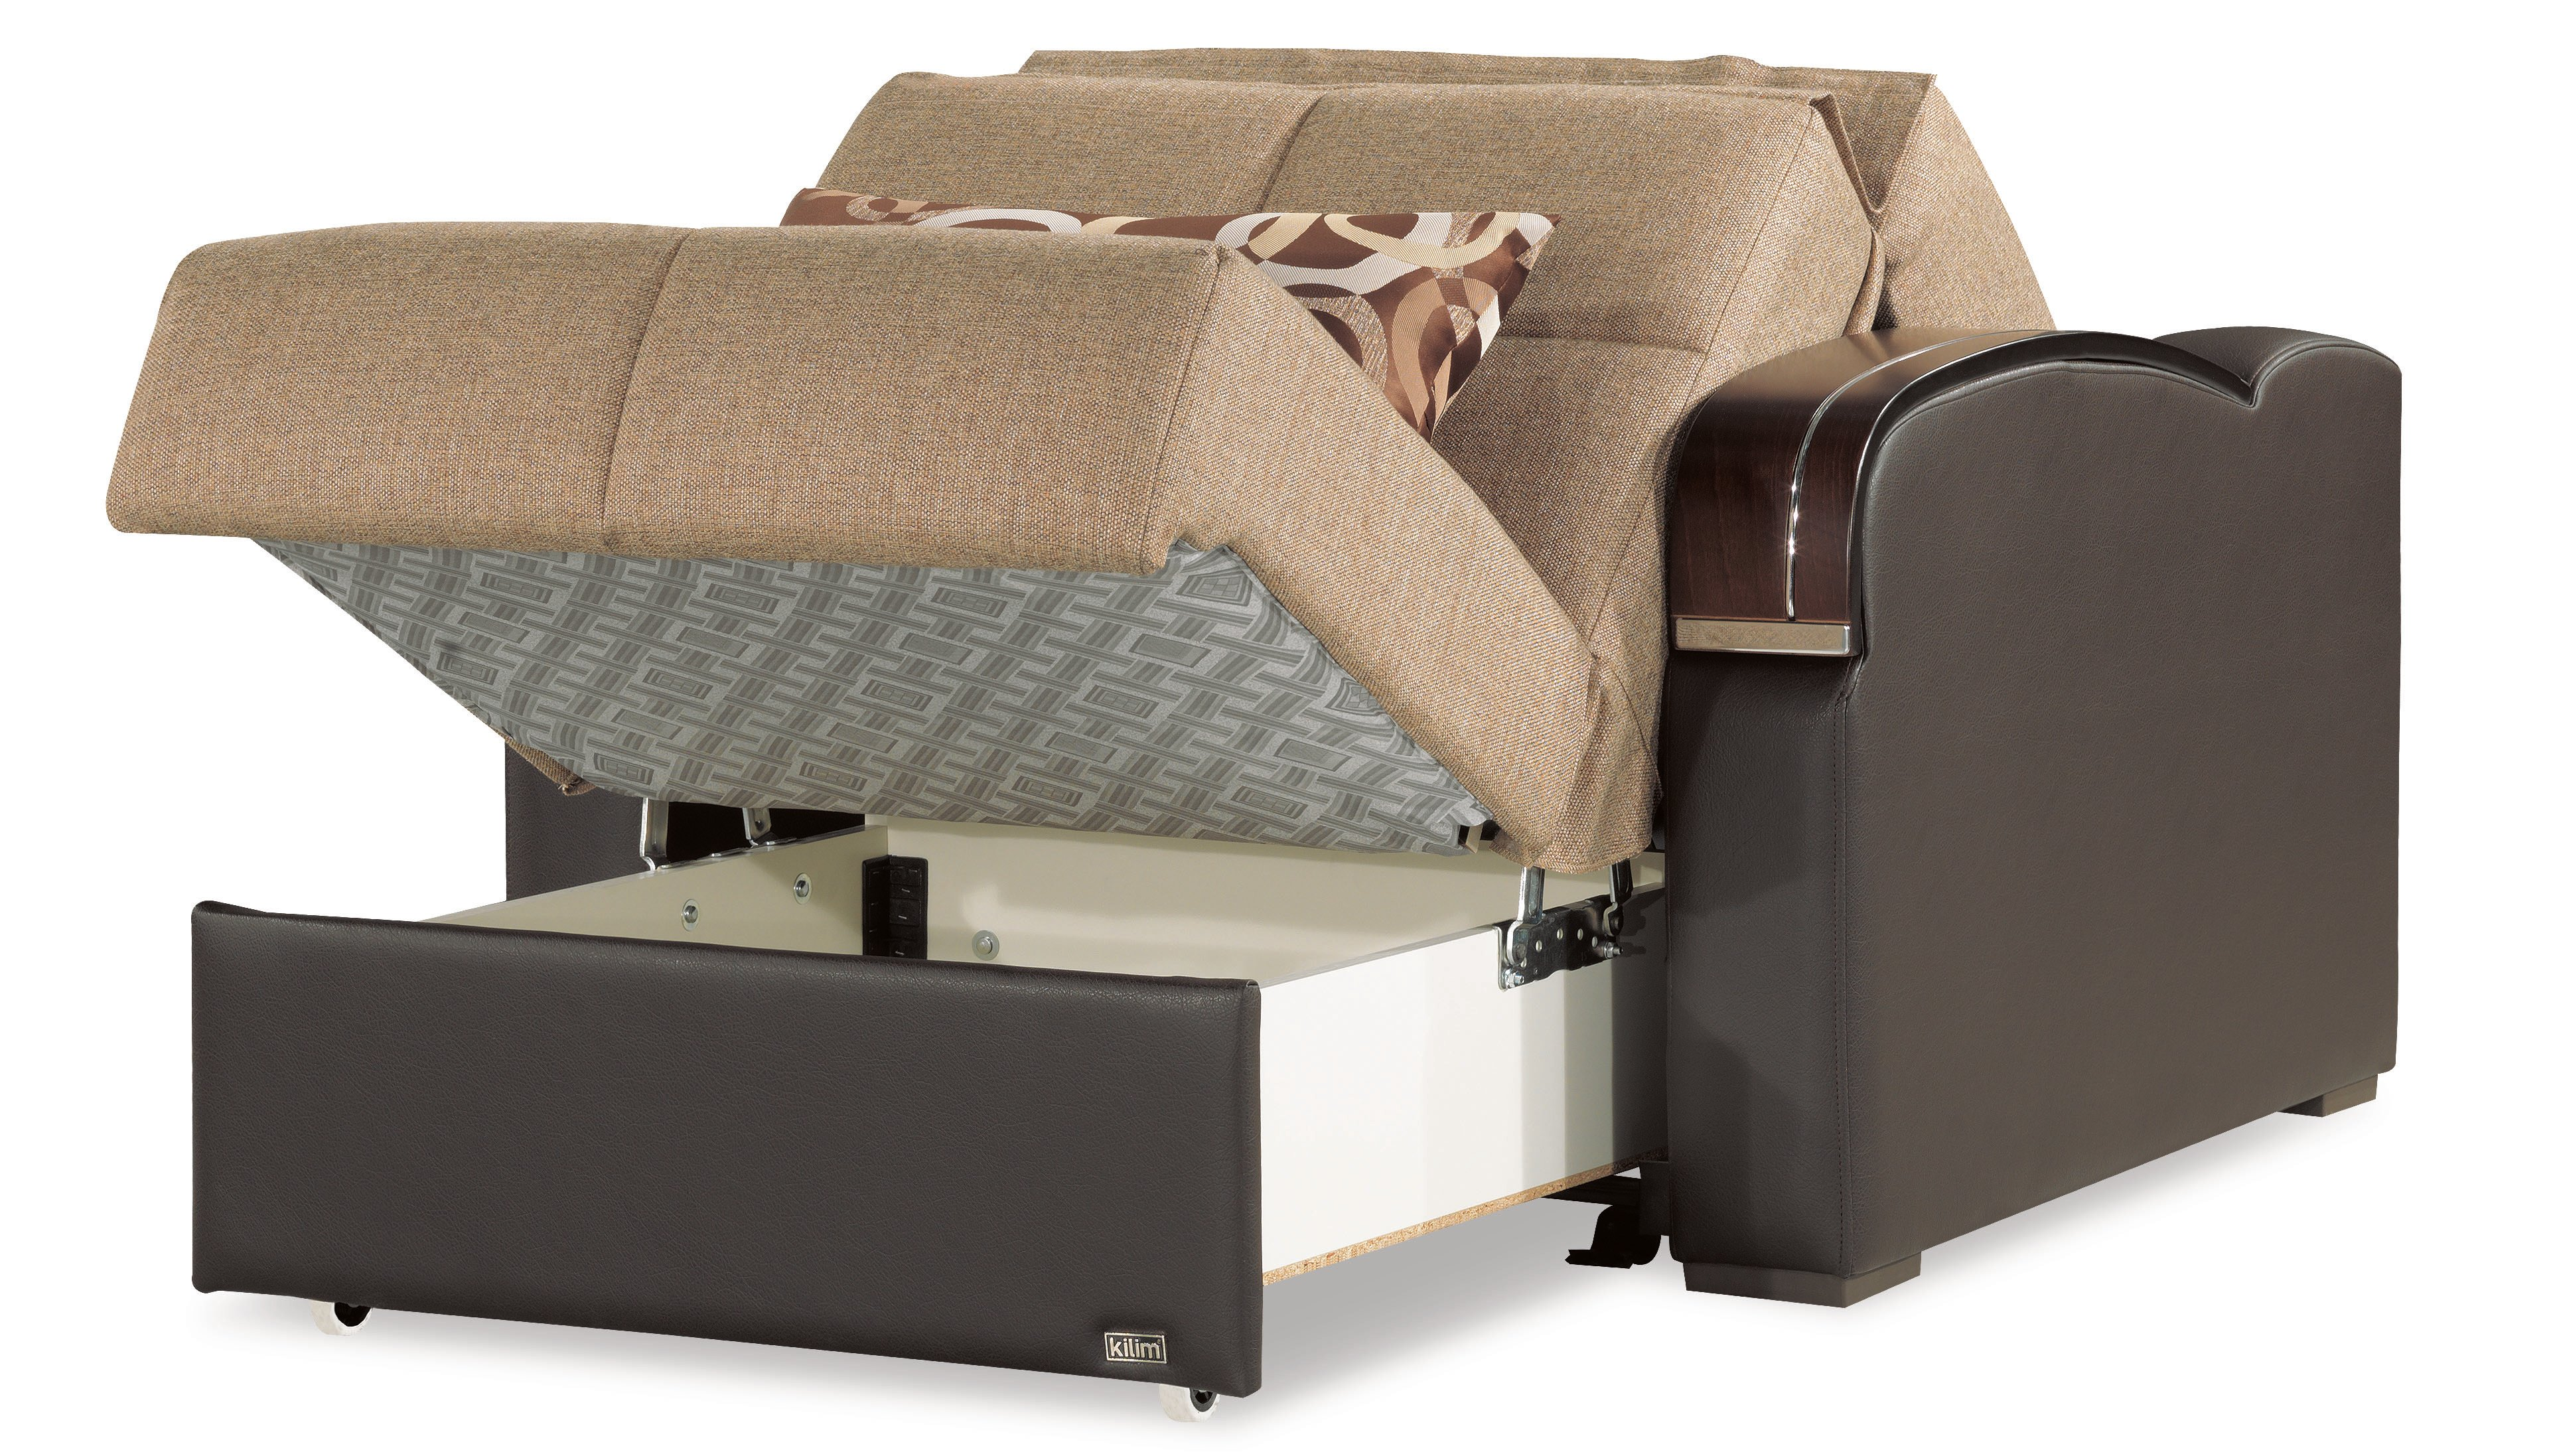 Convertible Chair Bed Aria Convertible Chair Bed Groupon  : SleepPlusBrownChair002 from sideradesign.com size 3841 x 2194 jpeg 2963kB